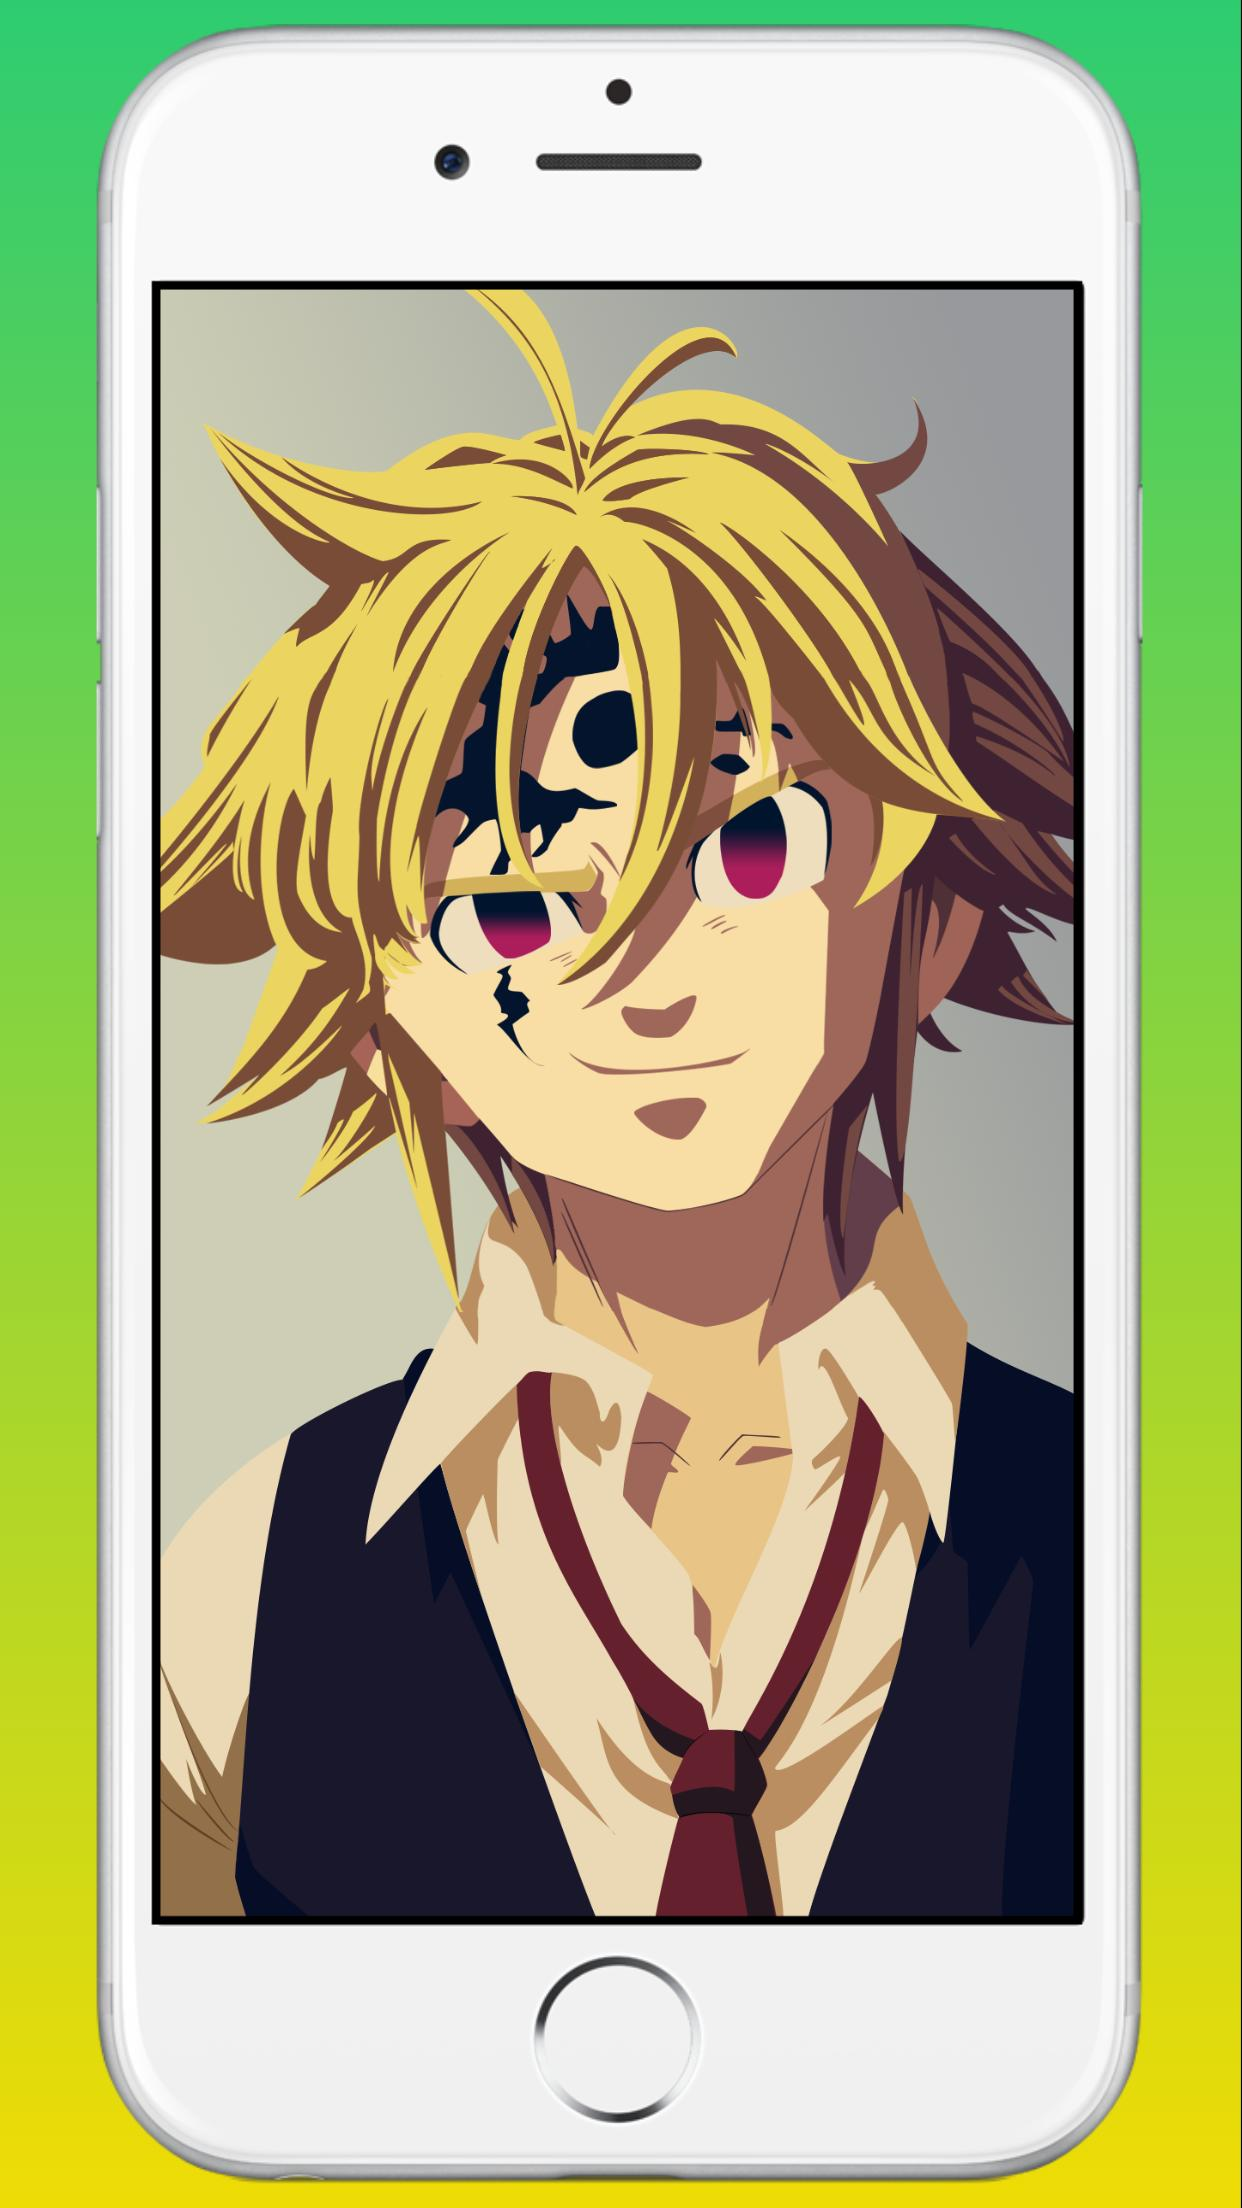 Nanatsu No Taizai Wallpaper Hd For Android Apk Download - seven deadly sins gowther top roblox